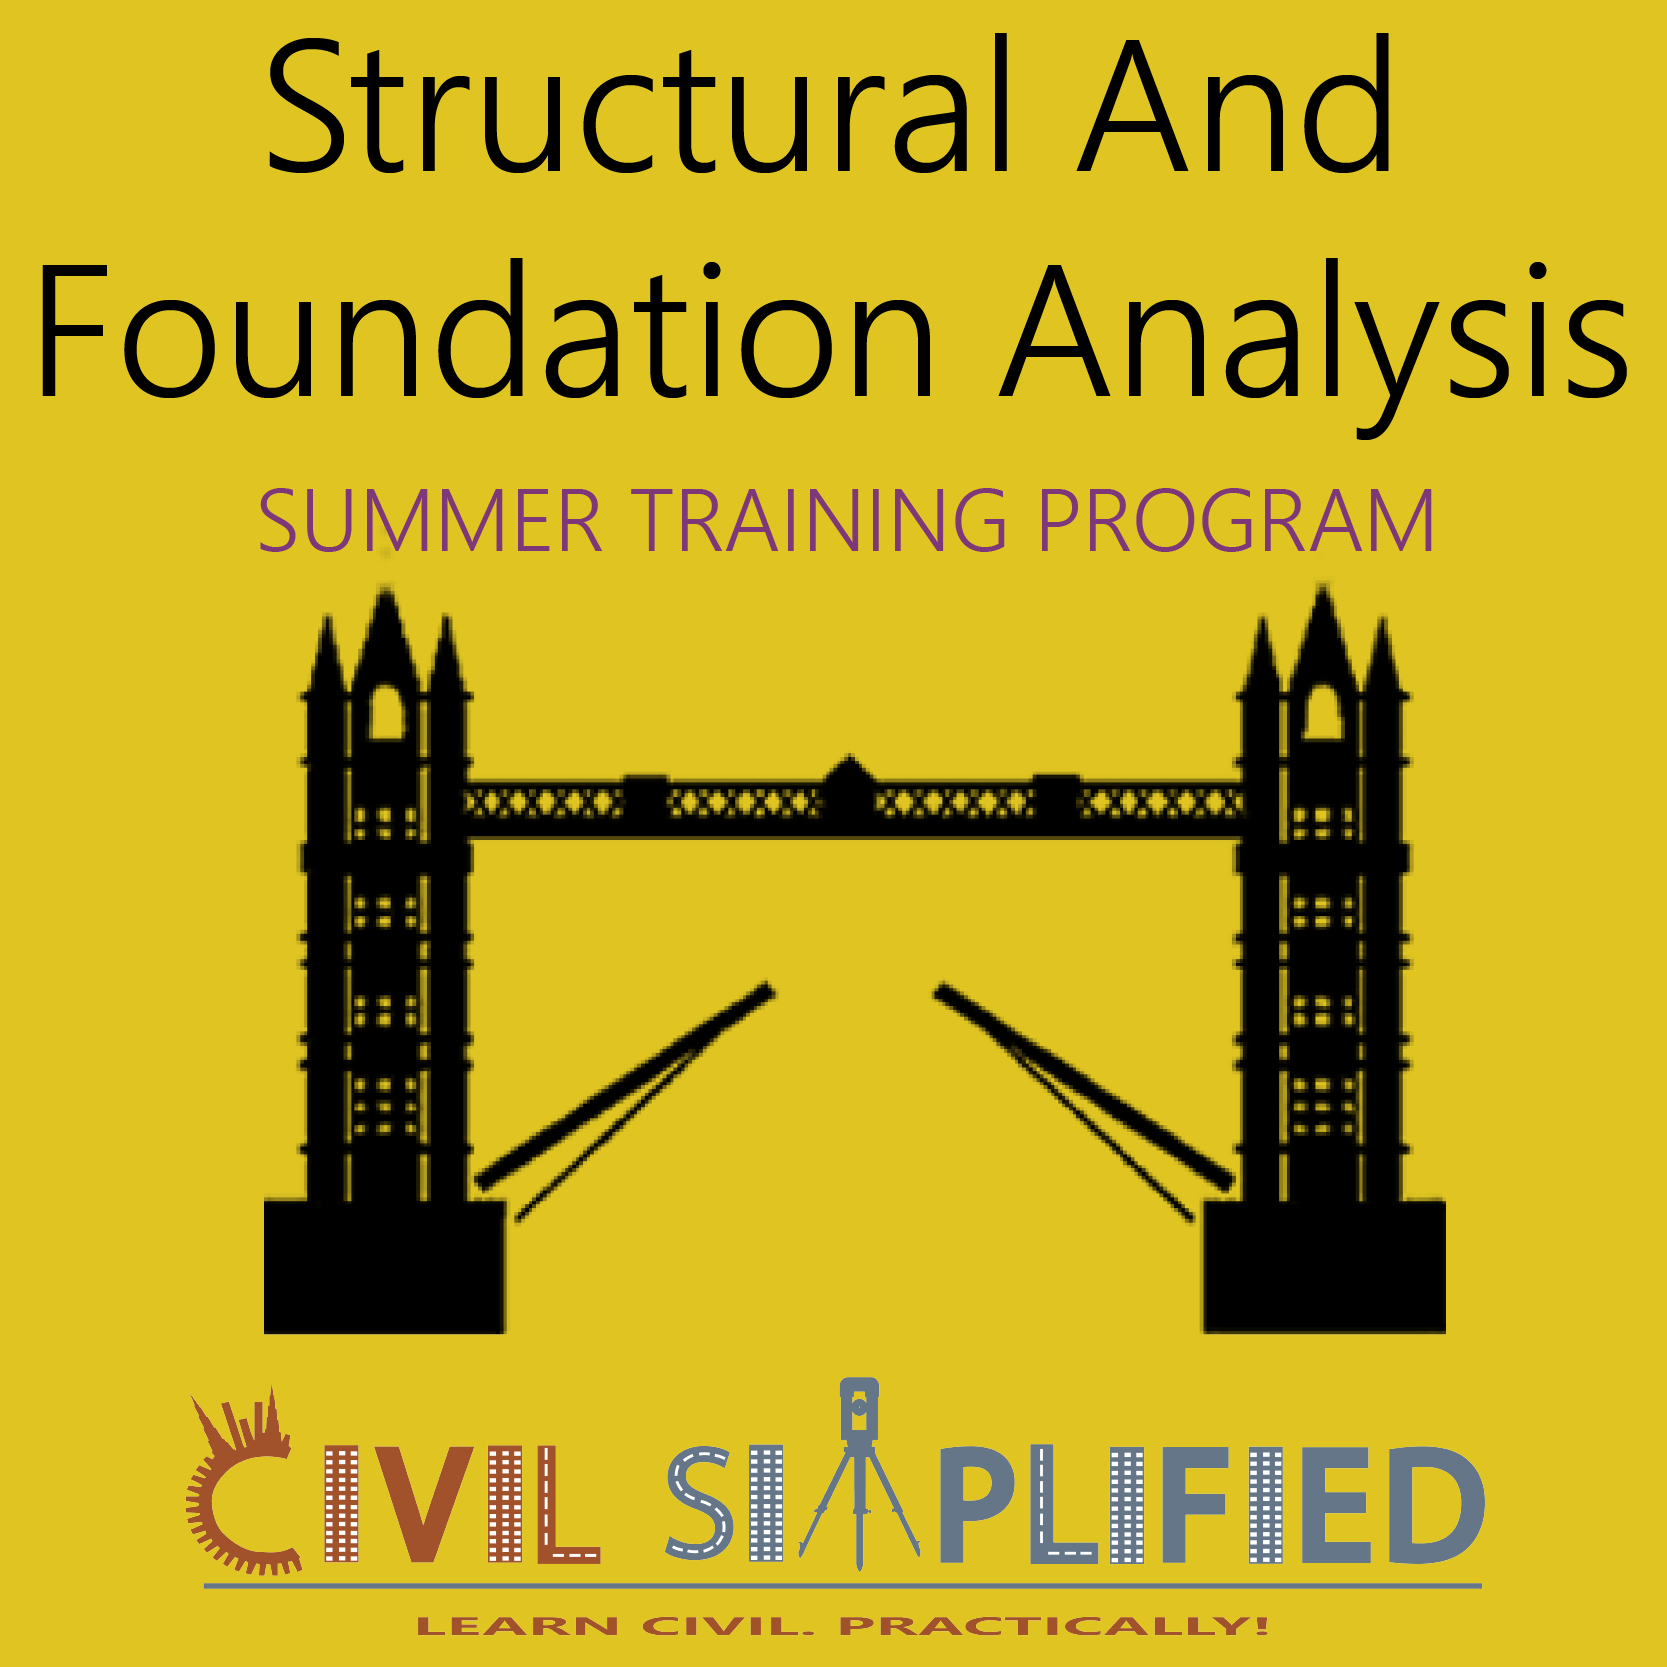 Summer Training Program in Civil Engineering - Structural and Foundation Analysis in Delhi